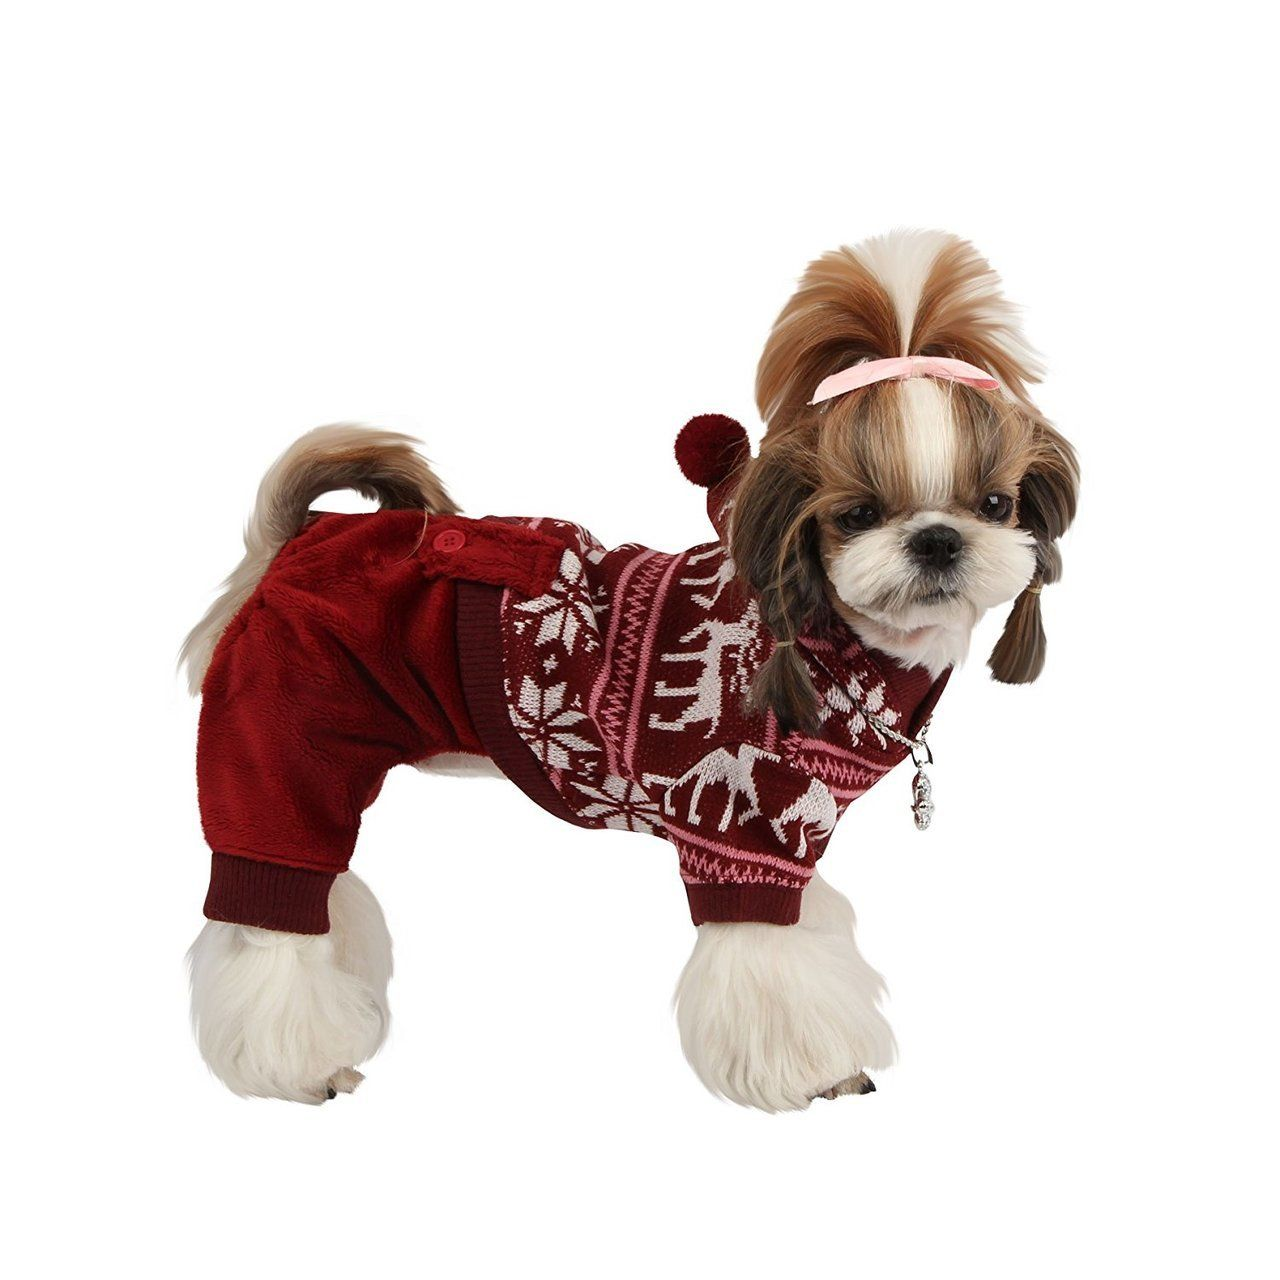 Doggie Couture Clothing